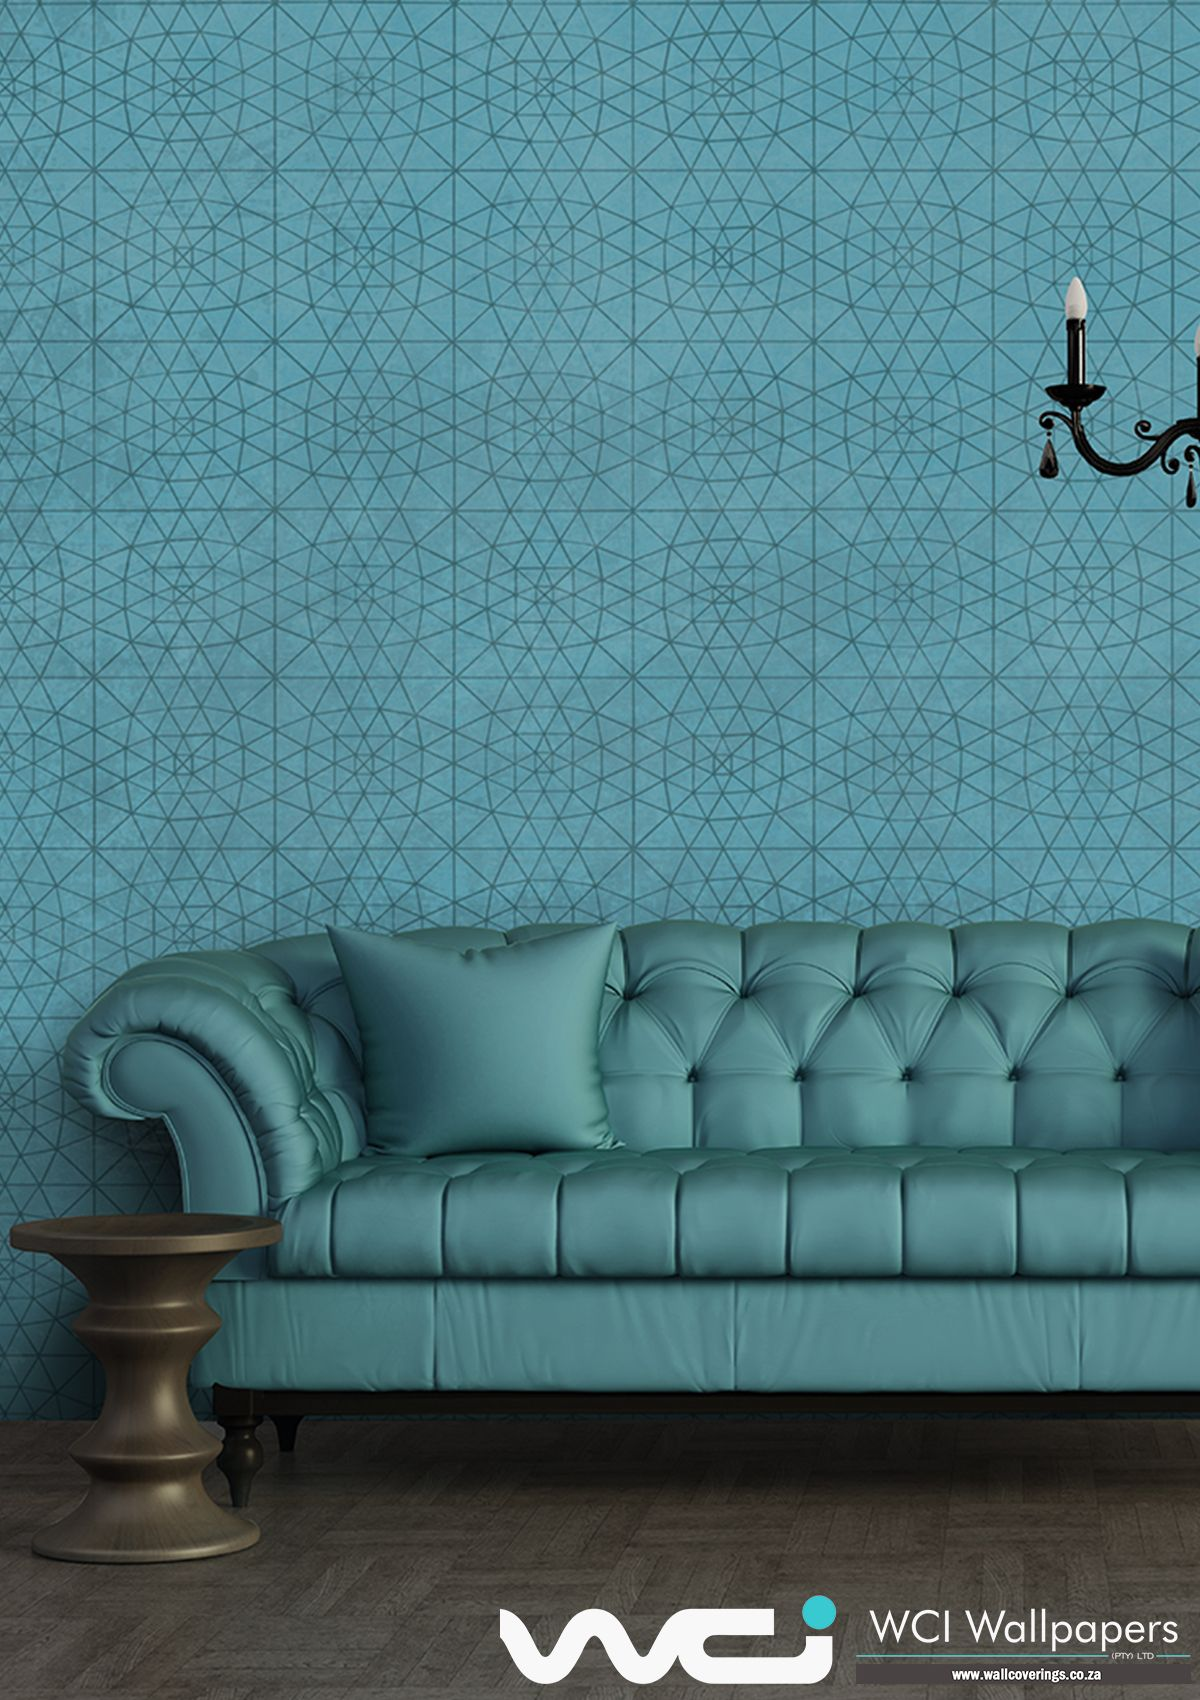 Pin By Wci Wallpapers Pty Ltd On New Ranges 2018 Pinterest